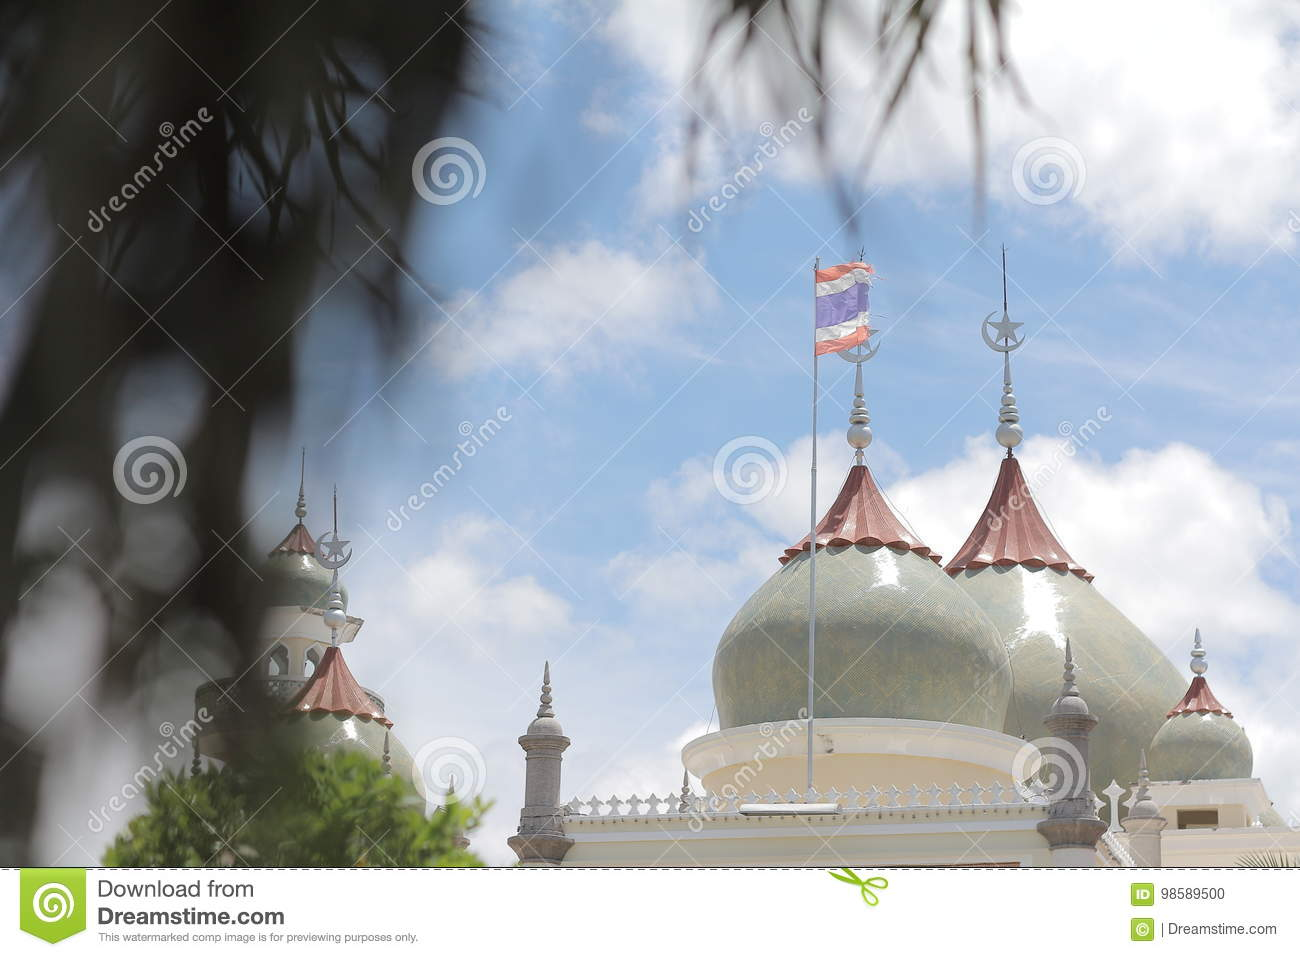 Dome Masjid Mosque pattani Art beautiful Islamic design sky and clouds